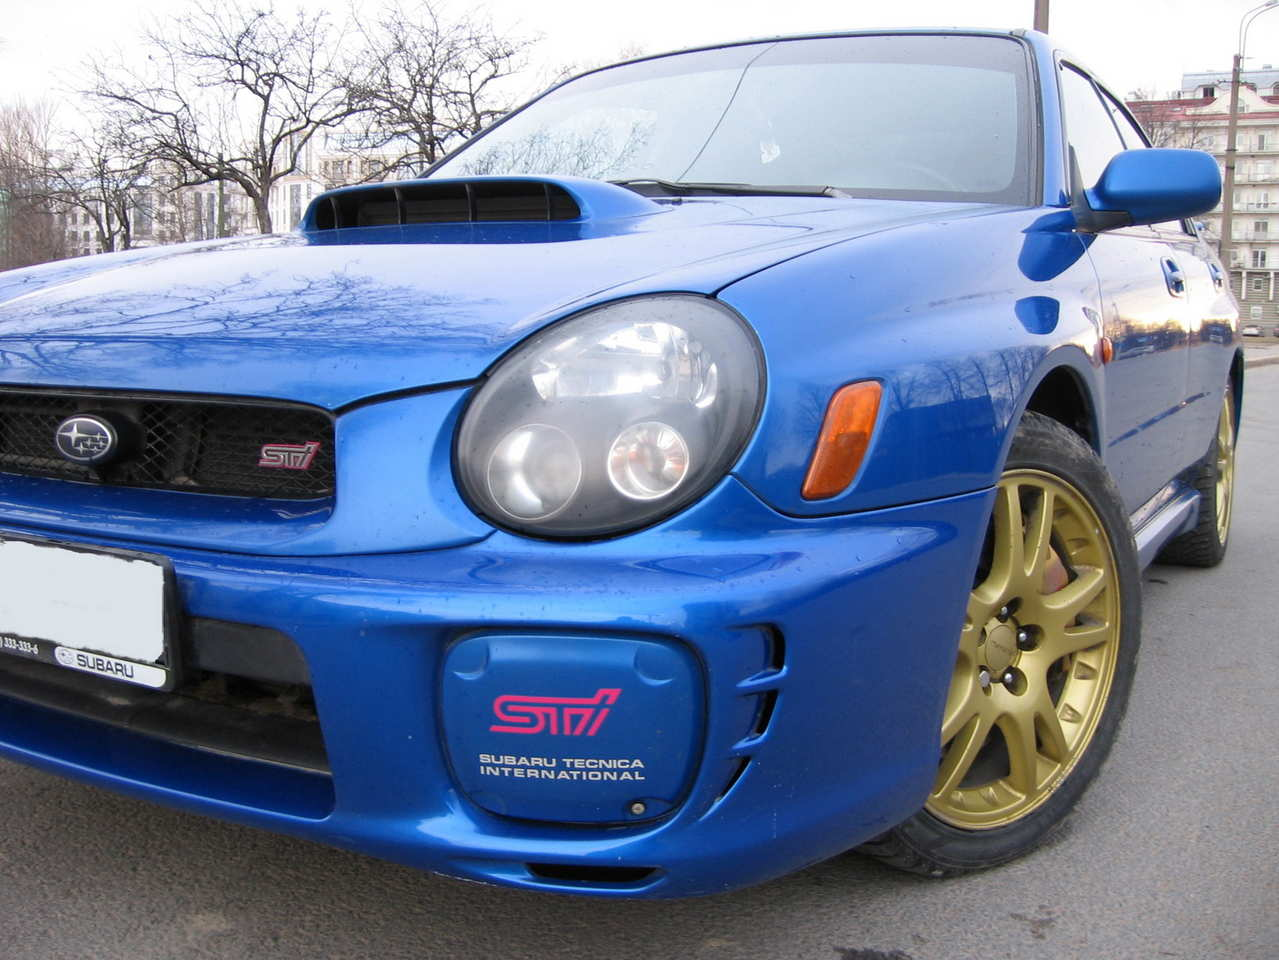 used 2002 subaru impreza wrx sti photos 2000cc gasoline. Black Bedroom Furniture Sets. Home Design Ideas